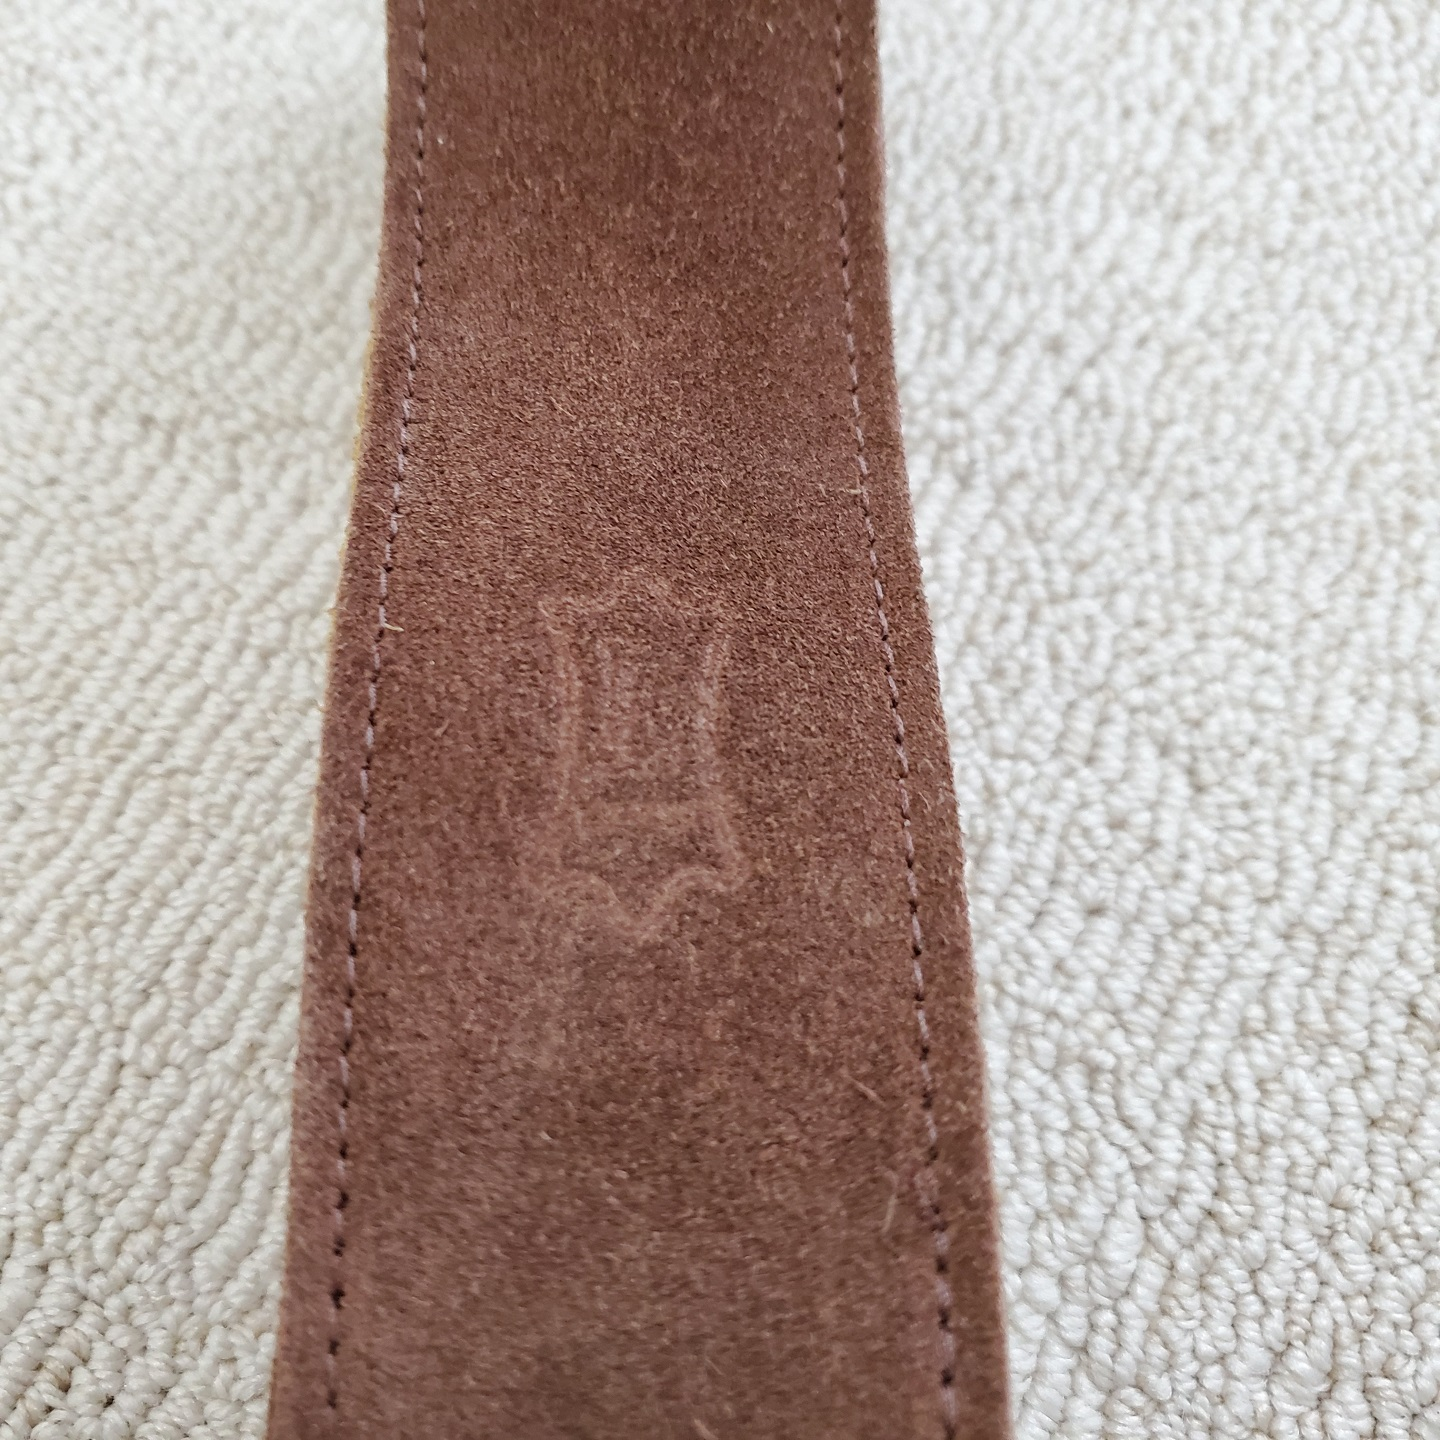 Levy's Brown Suede Leather Guitar Strap